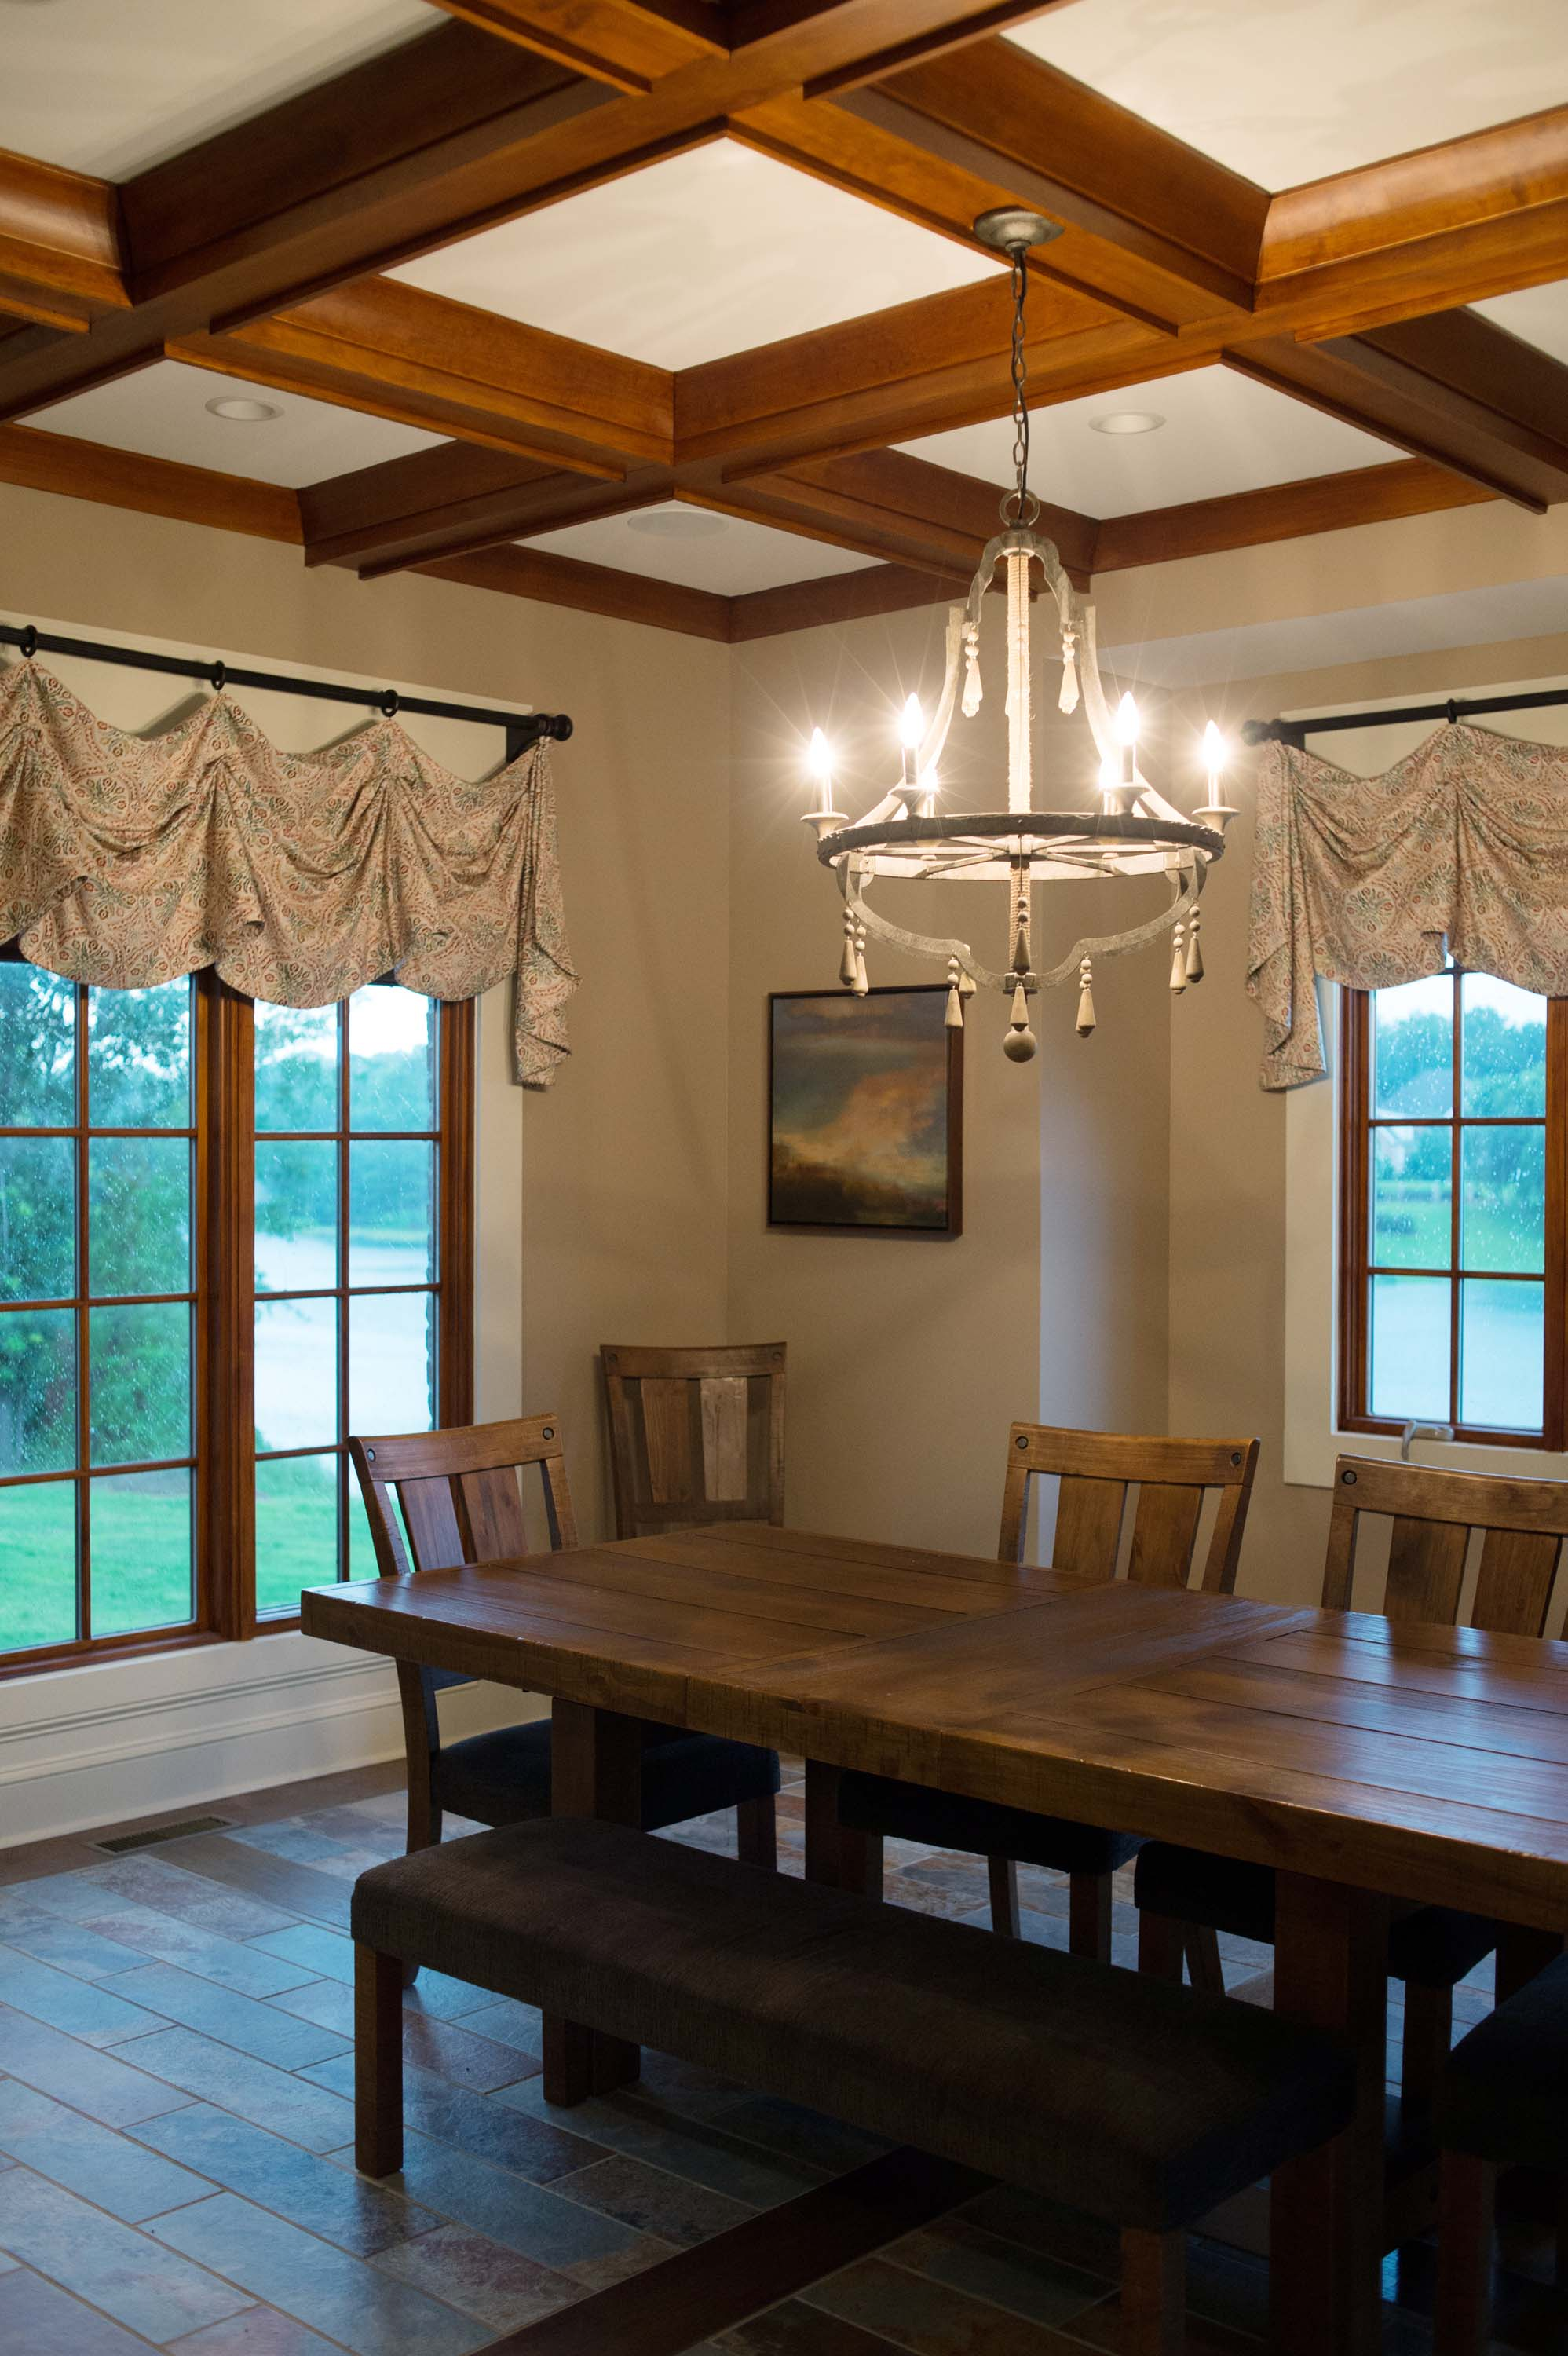 Dining room with wooden table and chairs, large windows and chandelier